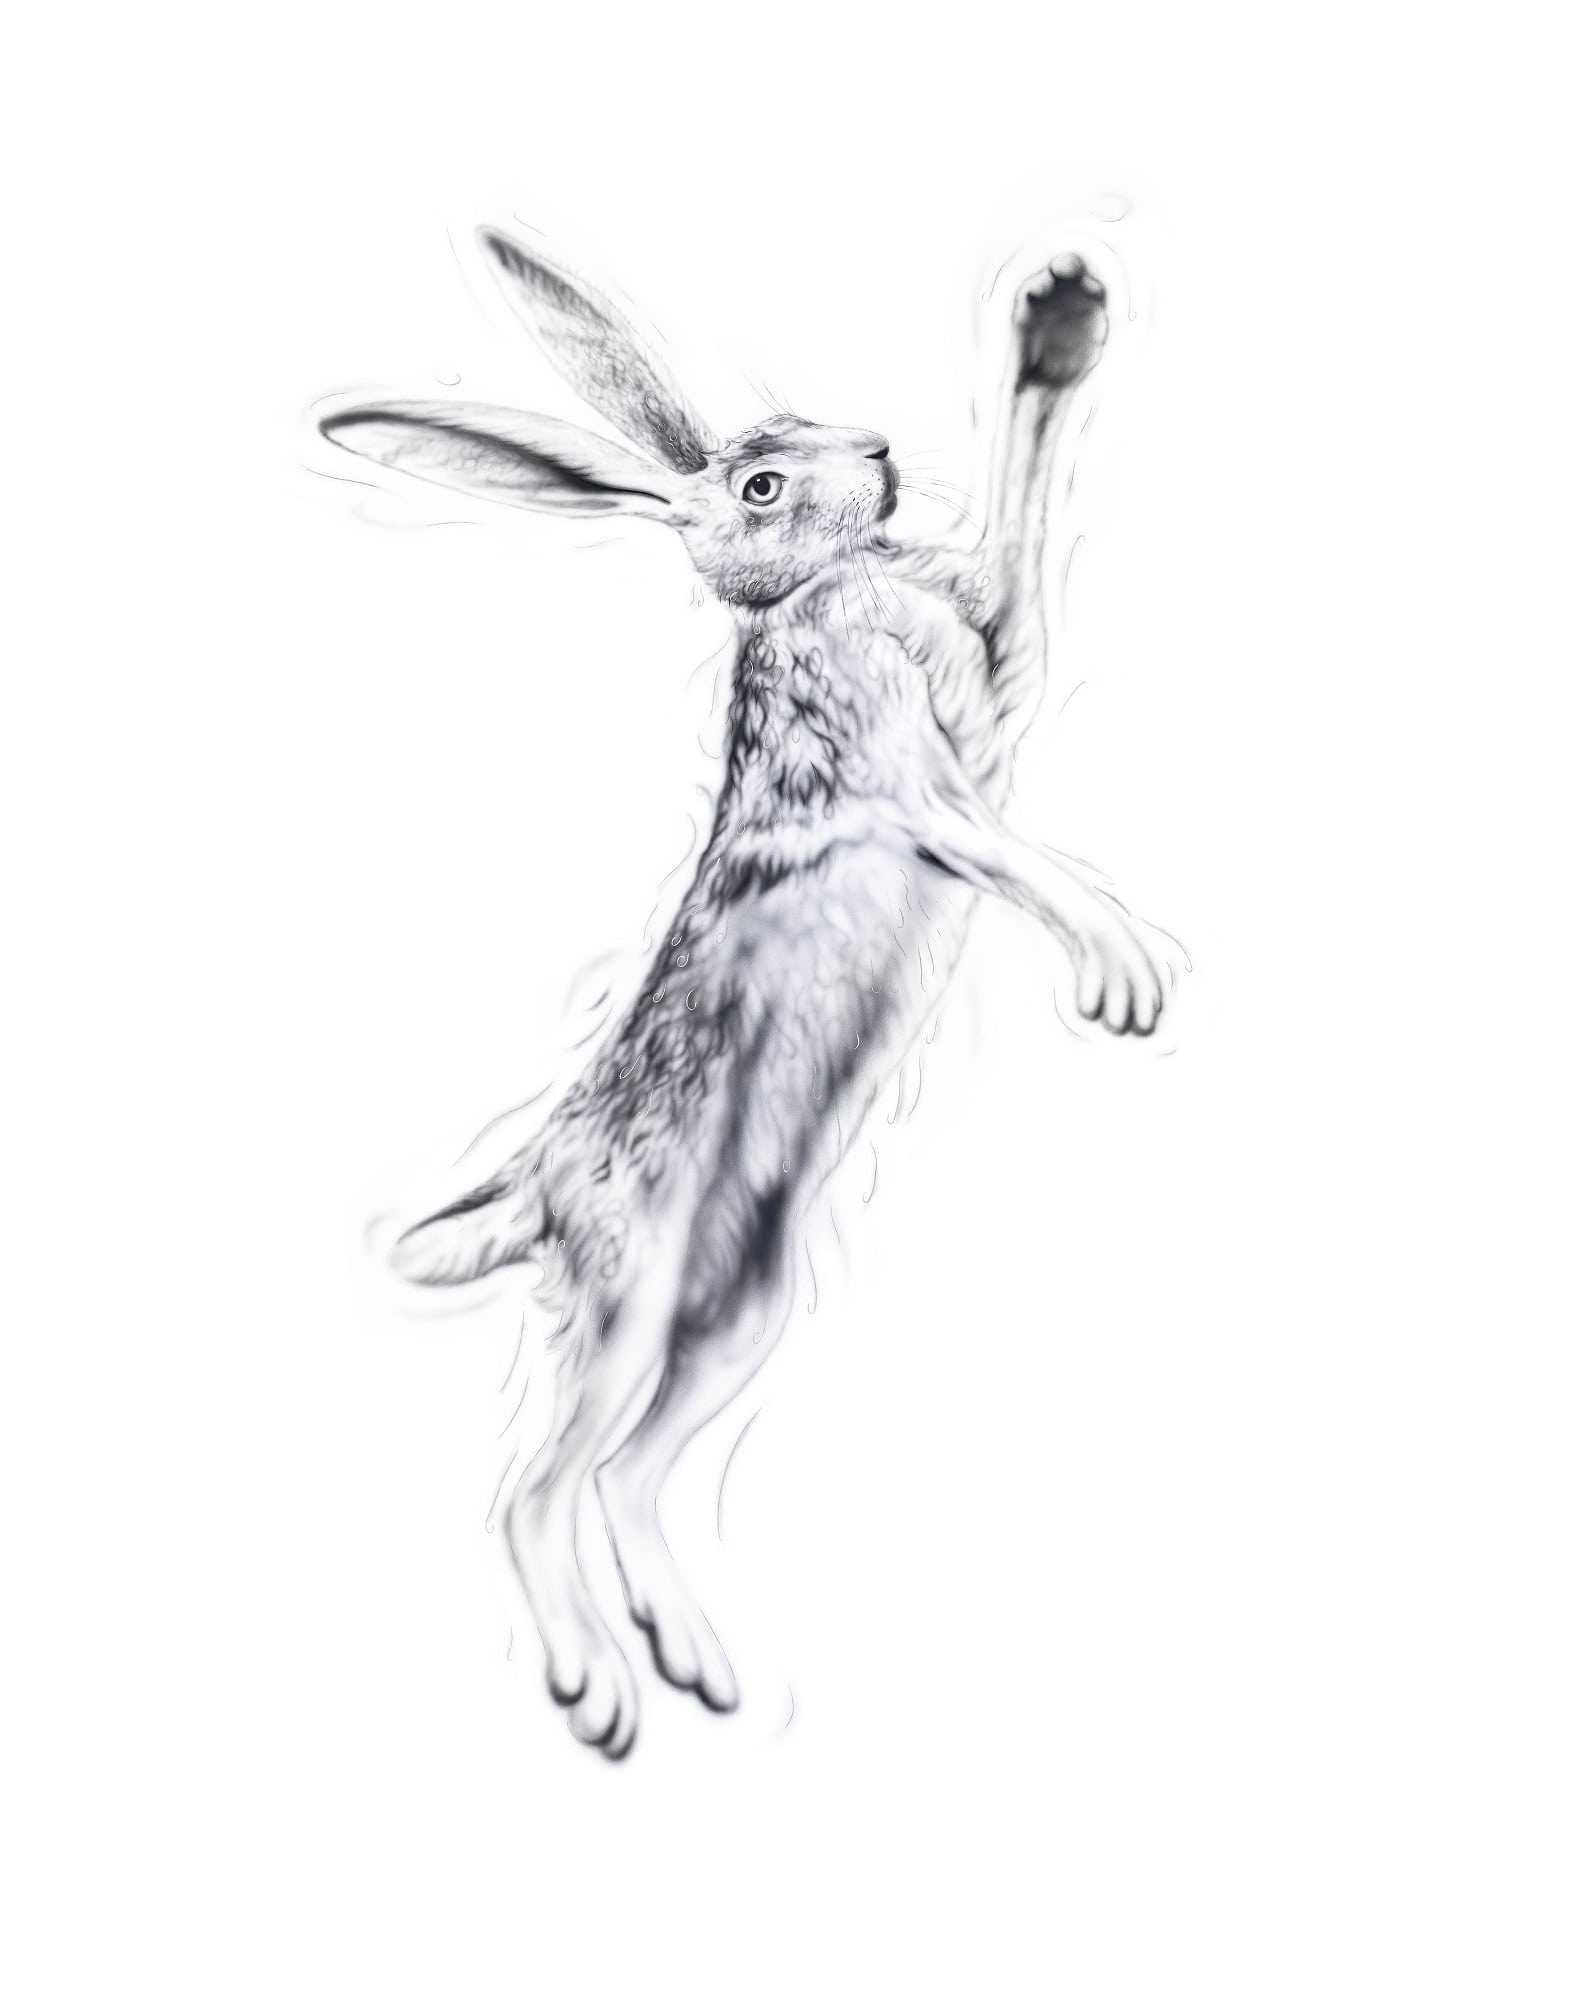 SIlver Hare female 2 - a painting by Joanna May. In this painting, Joanna uses silver paint threading through the image giving glamour and a sense of movement to the painting. This is a female hare boxing.